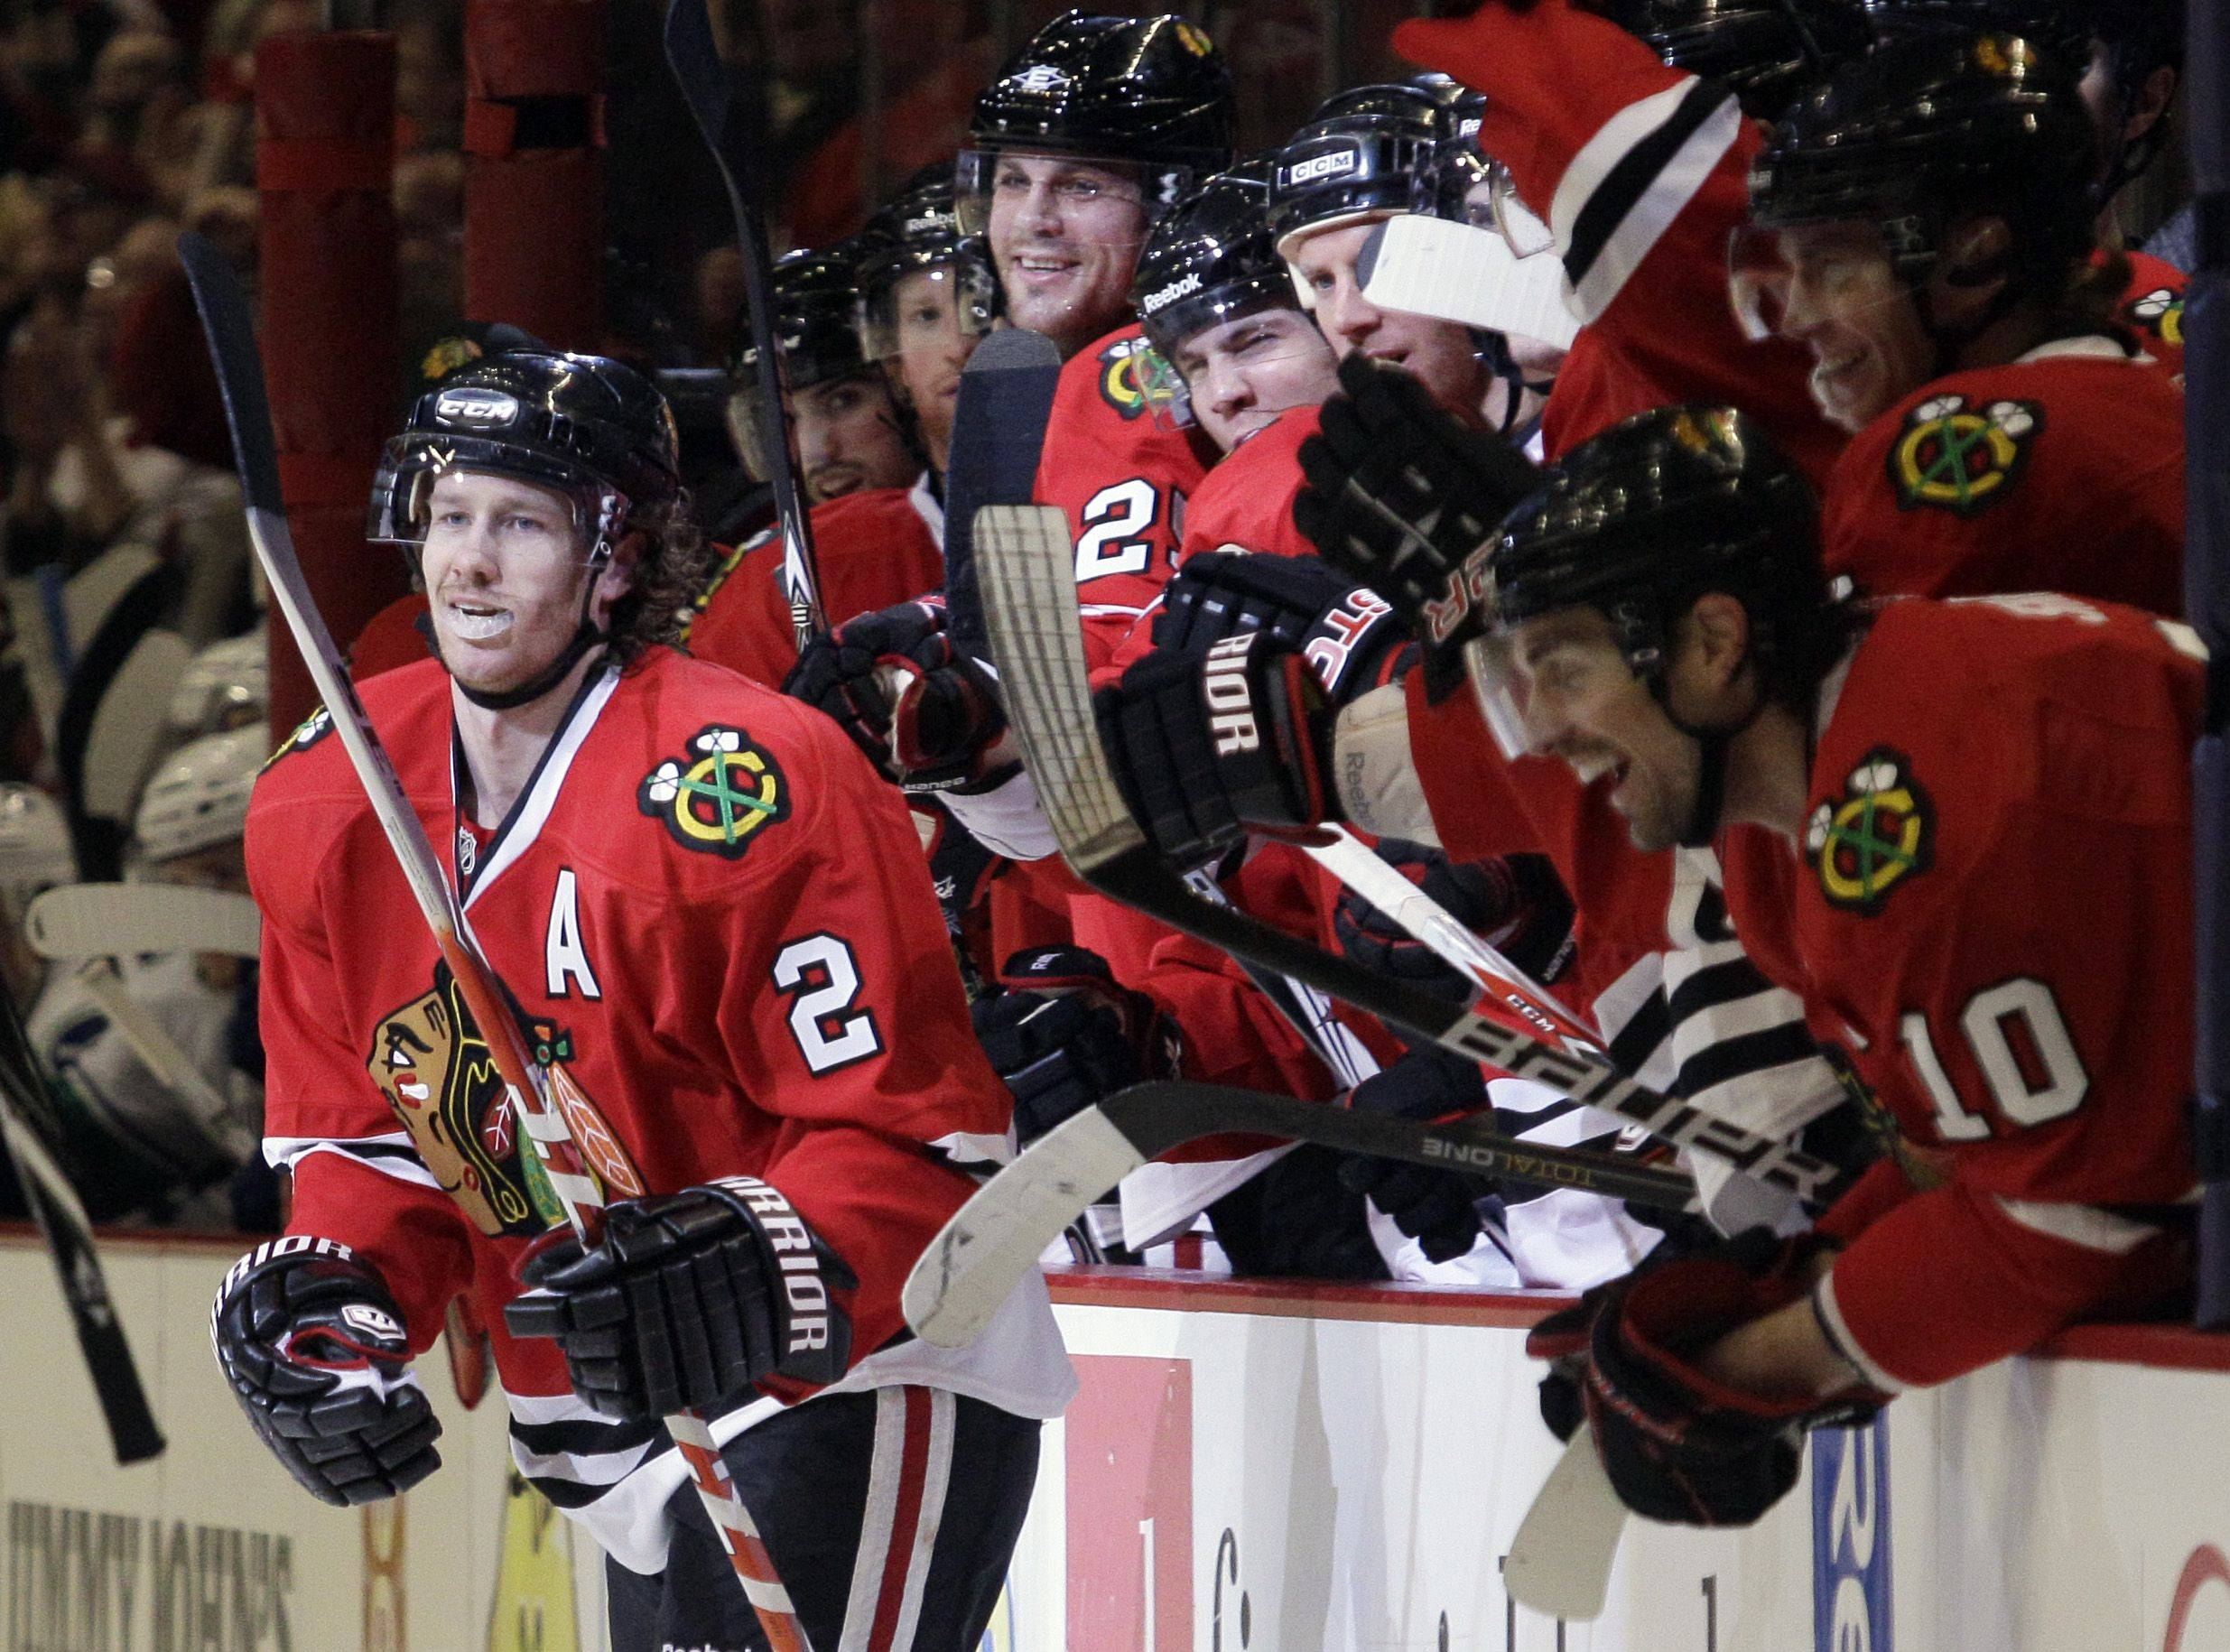 Chicago Blackhawks defenseman Duncan Keith (2) celebrates his second-period goal with his teammates .